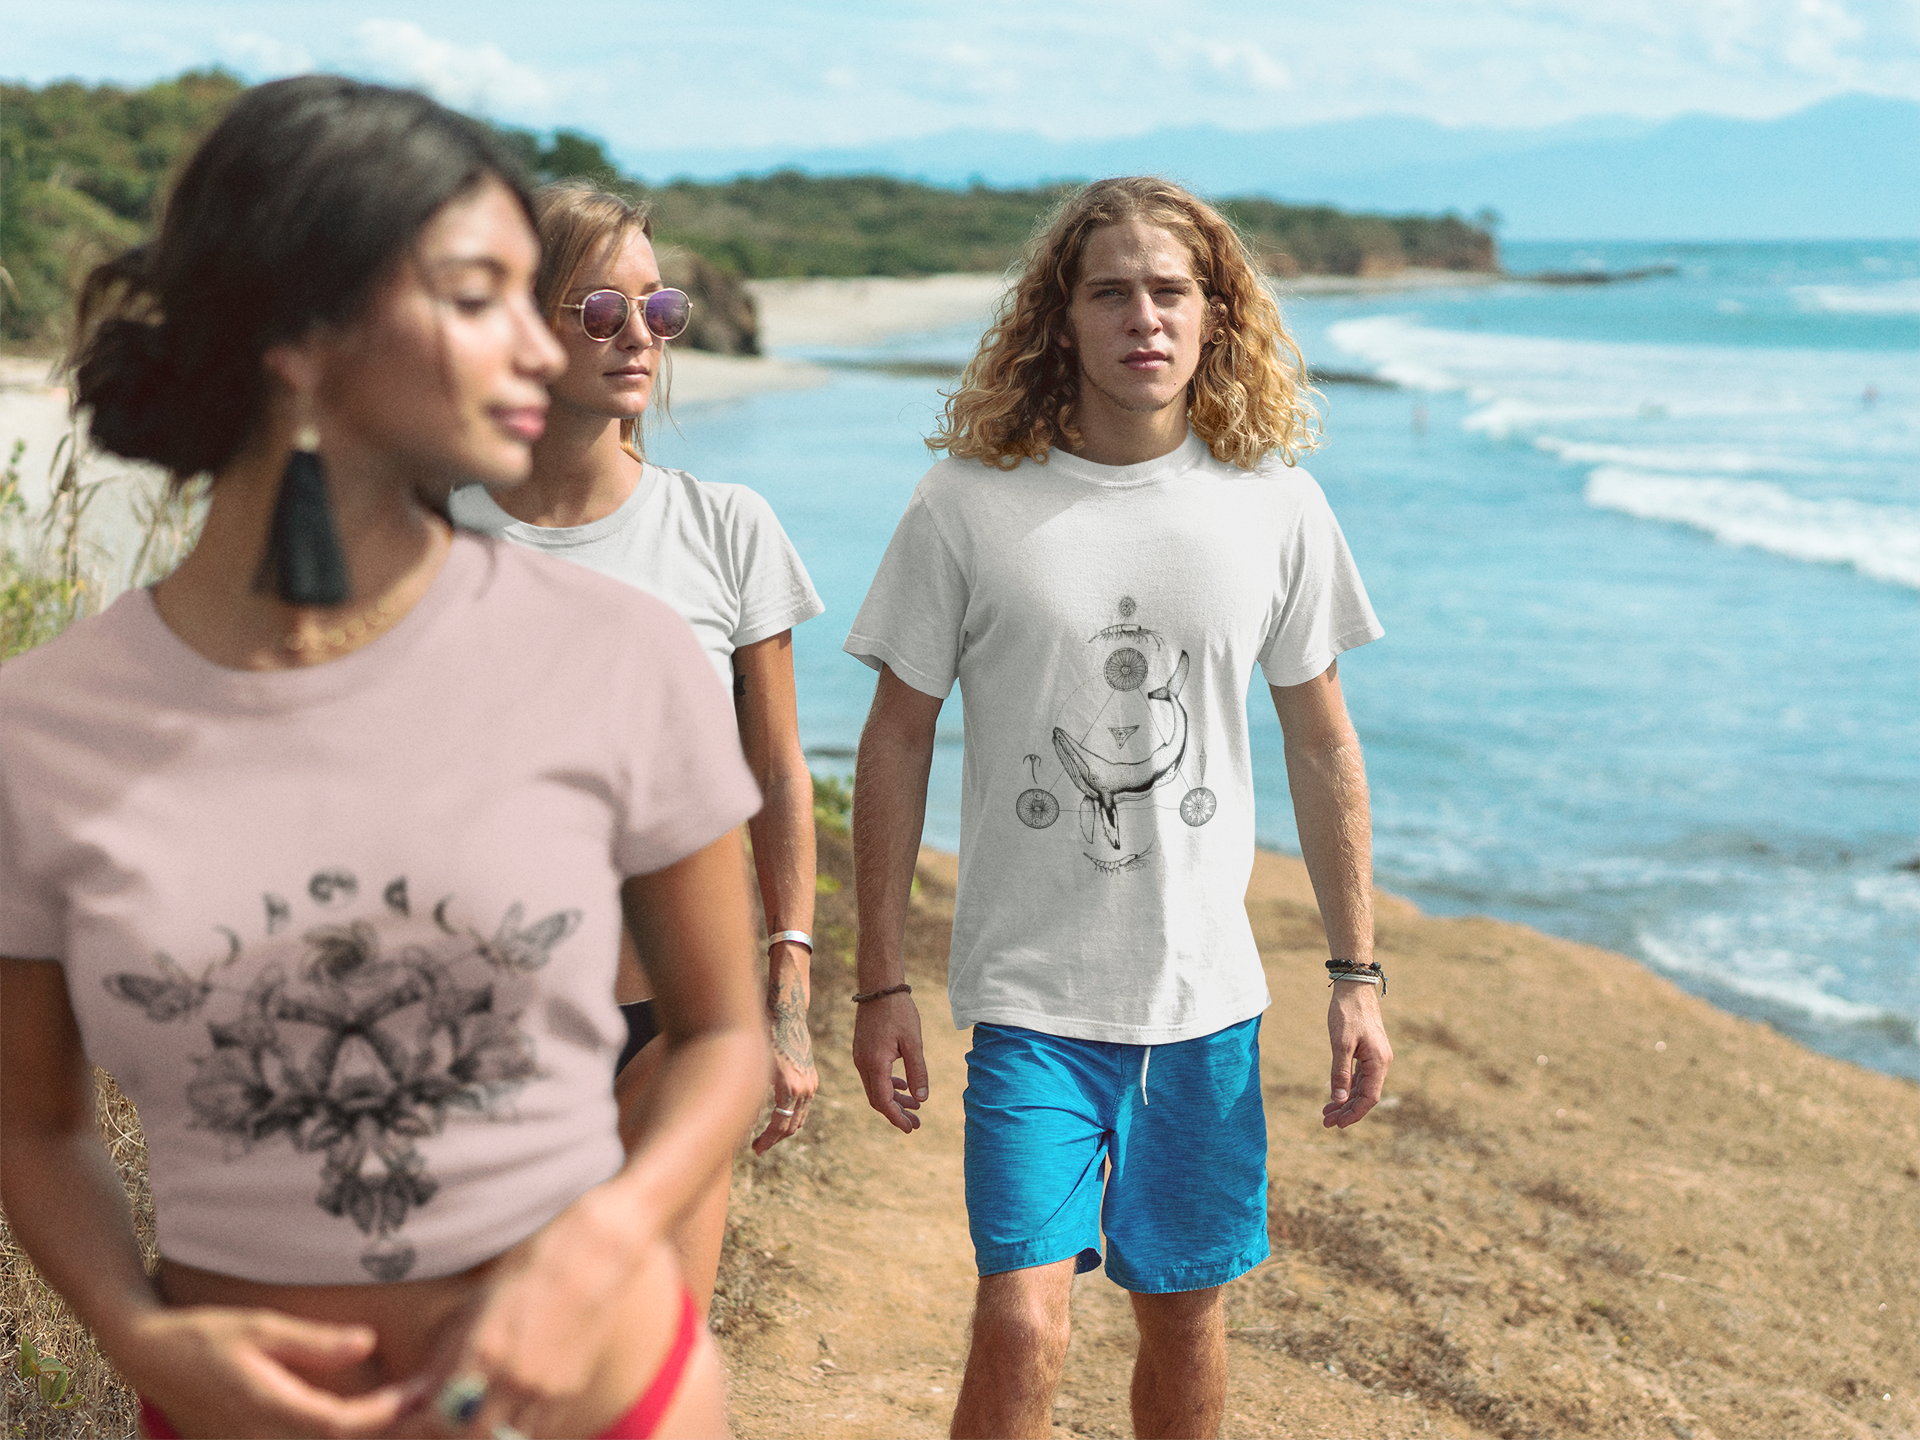 group-of-friends-walking-by-the-beach-wearing-t-shirts-mockup-a18830.png